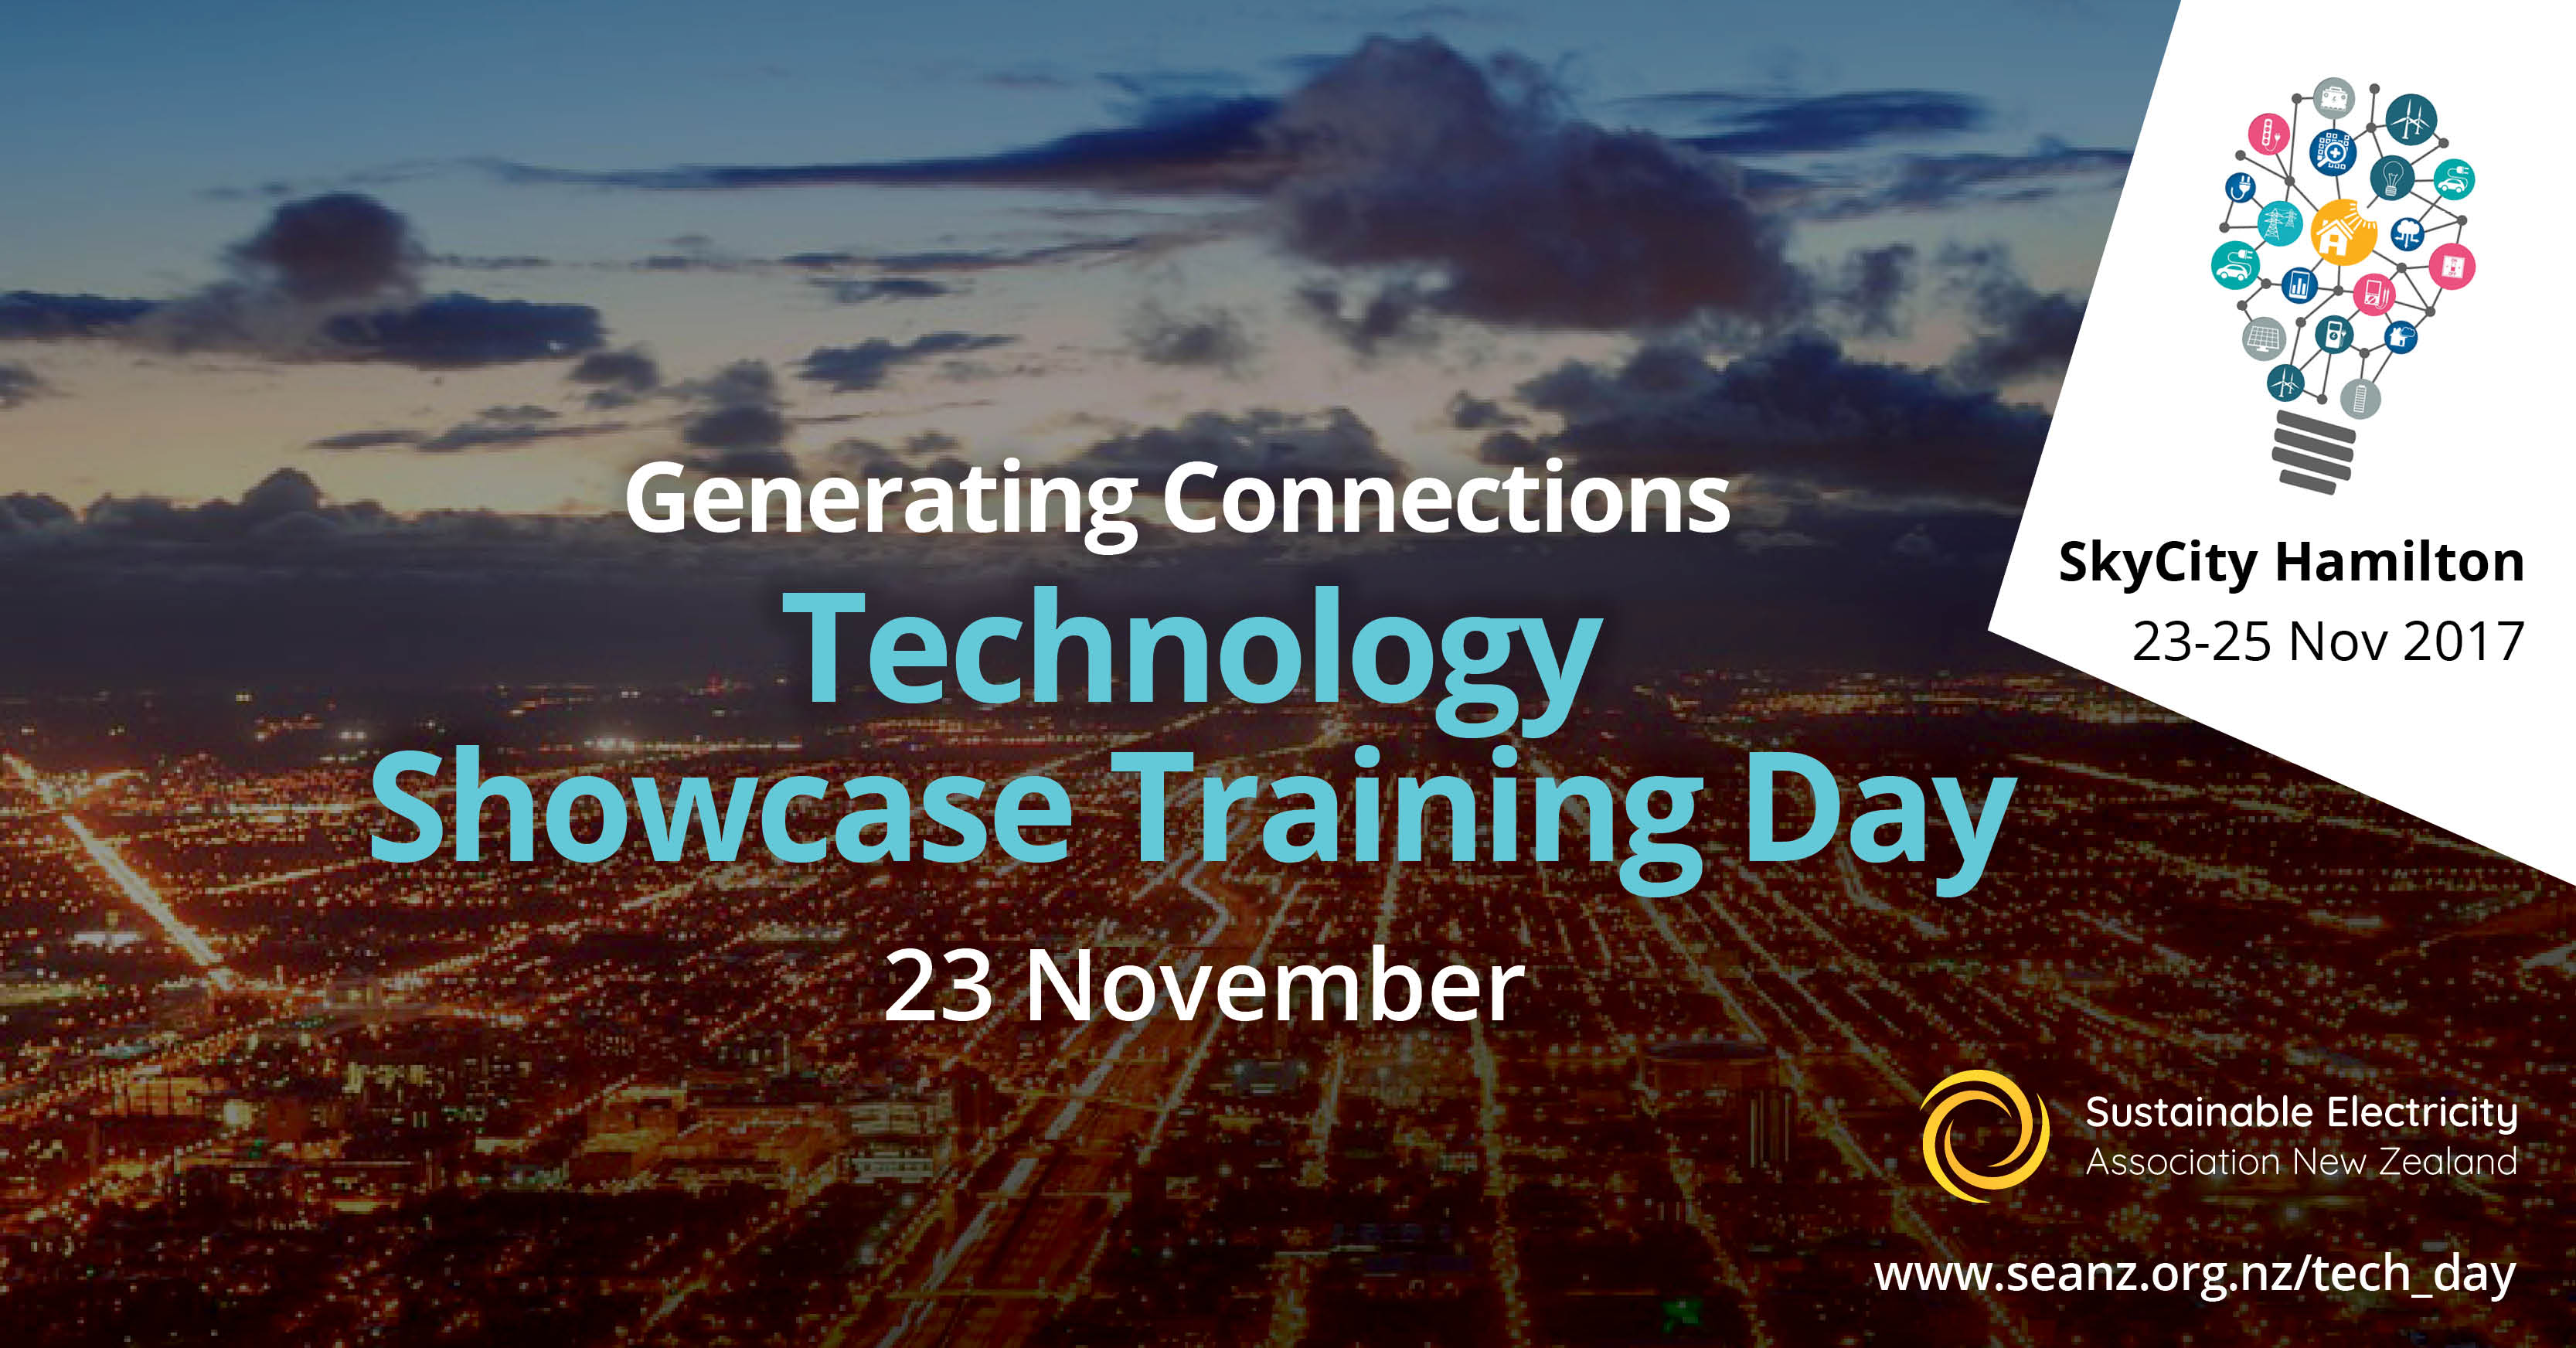 SEANZ Technology Showcase Training Day